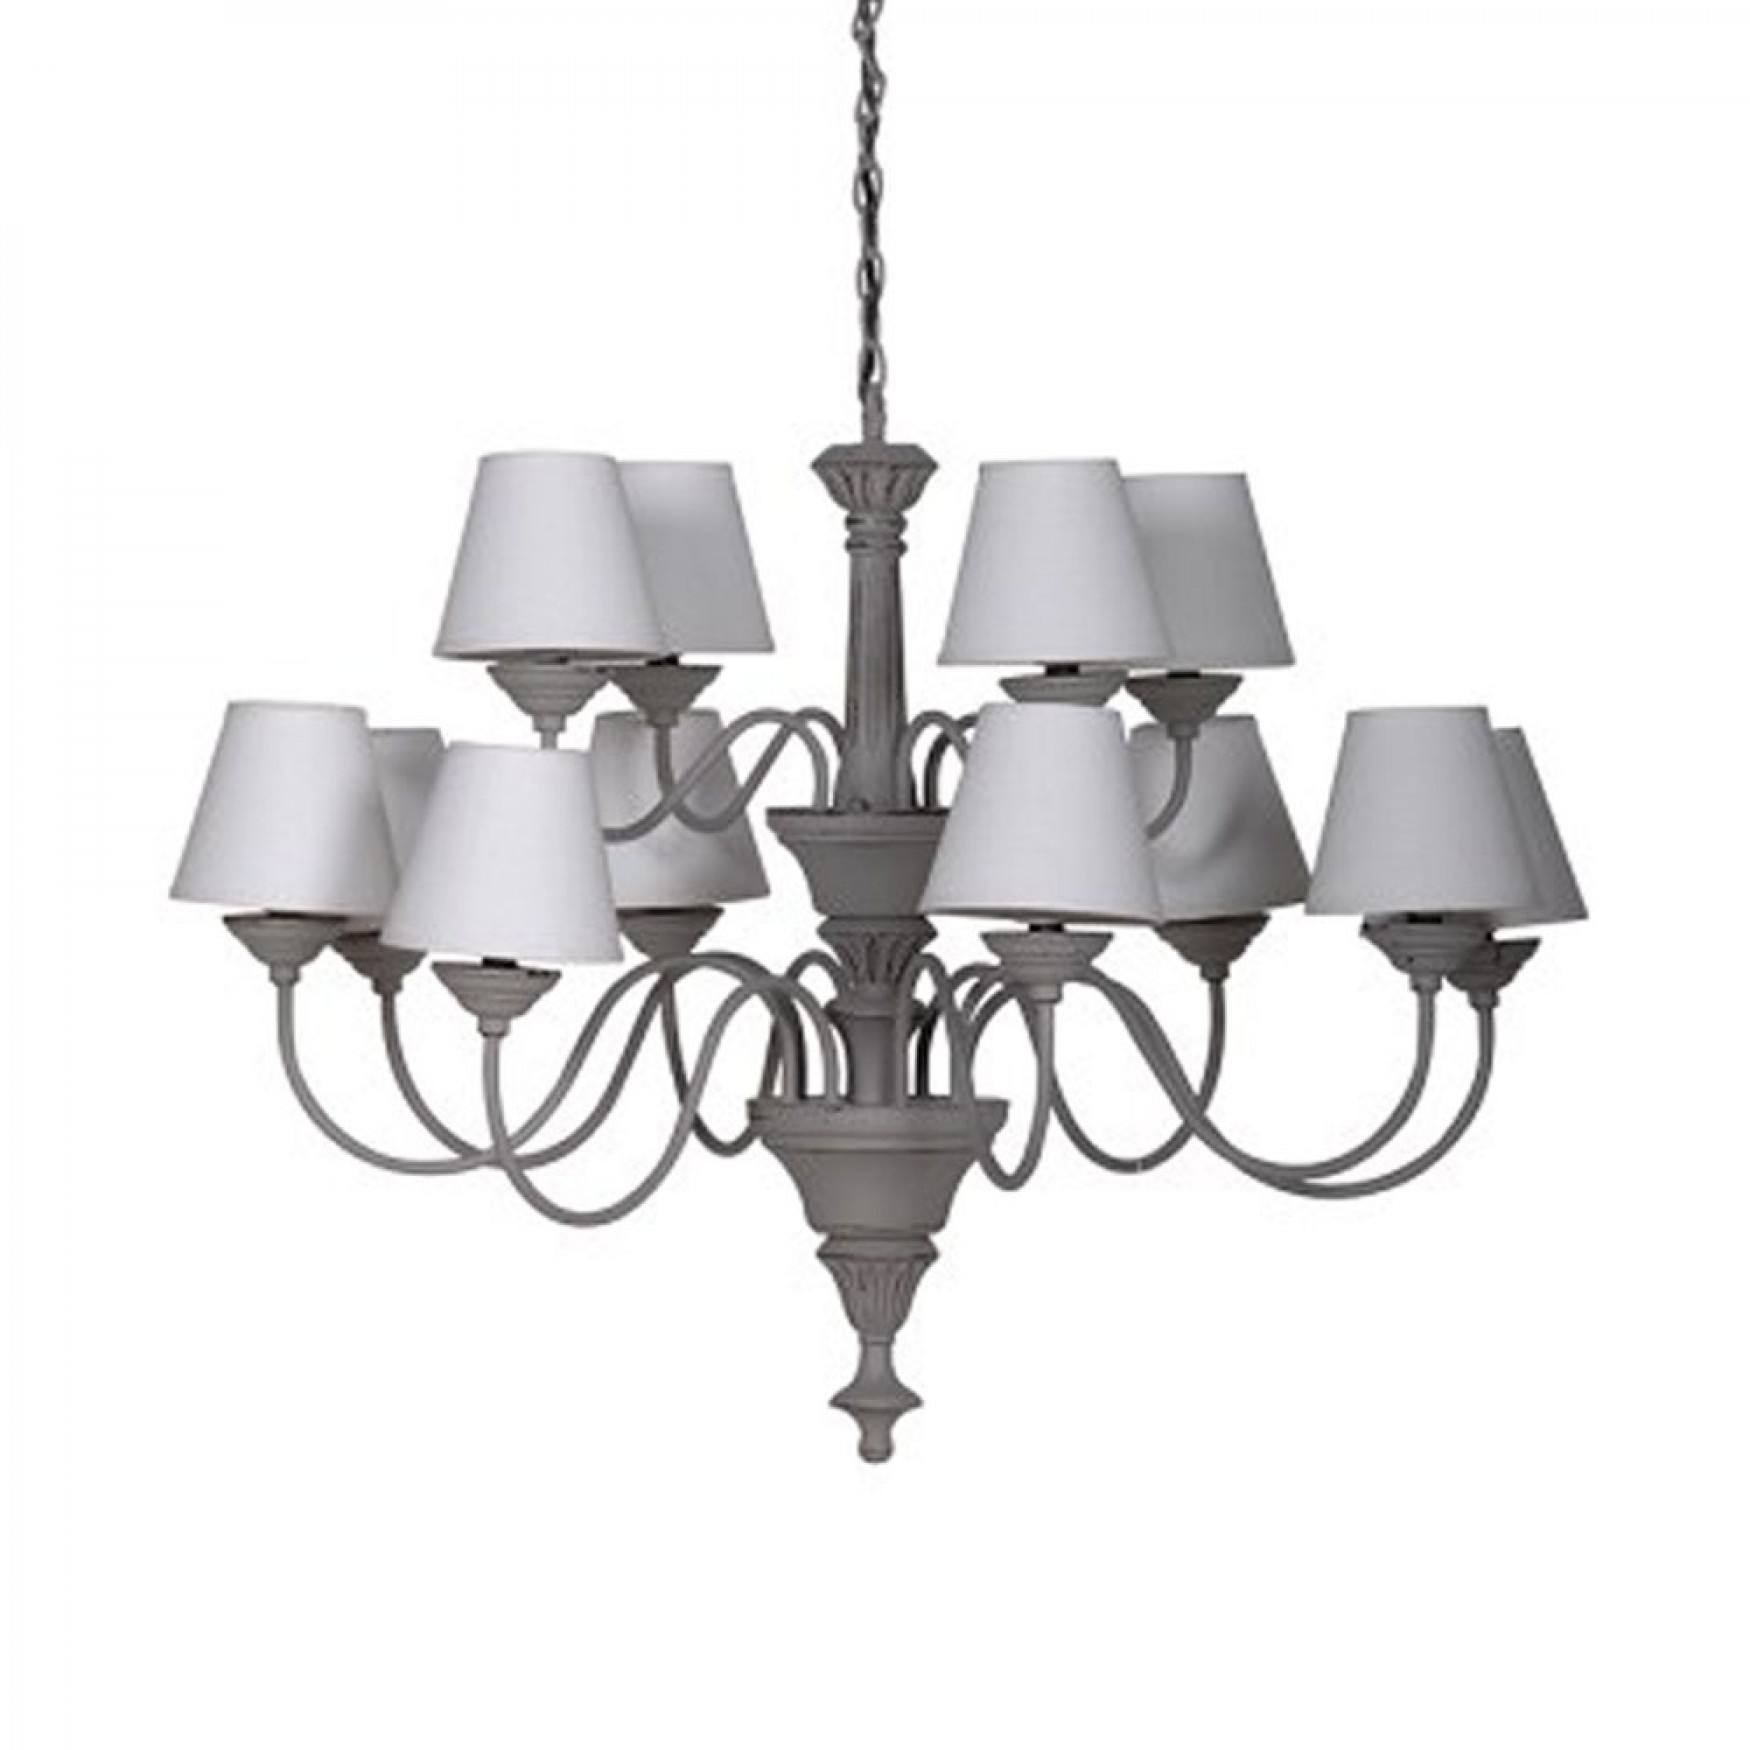 Chandeliers Grey Chandelier With 12 Cream Shades Pertaining To Grey Chandeliers (Image 19 of 25)